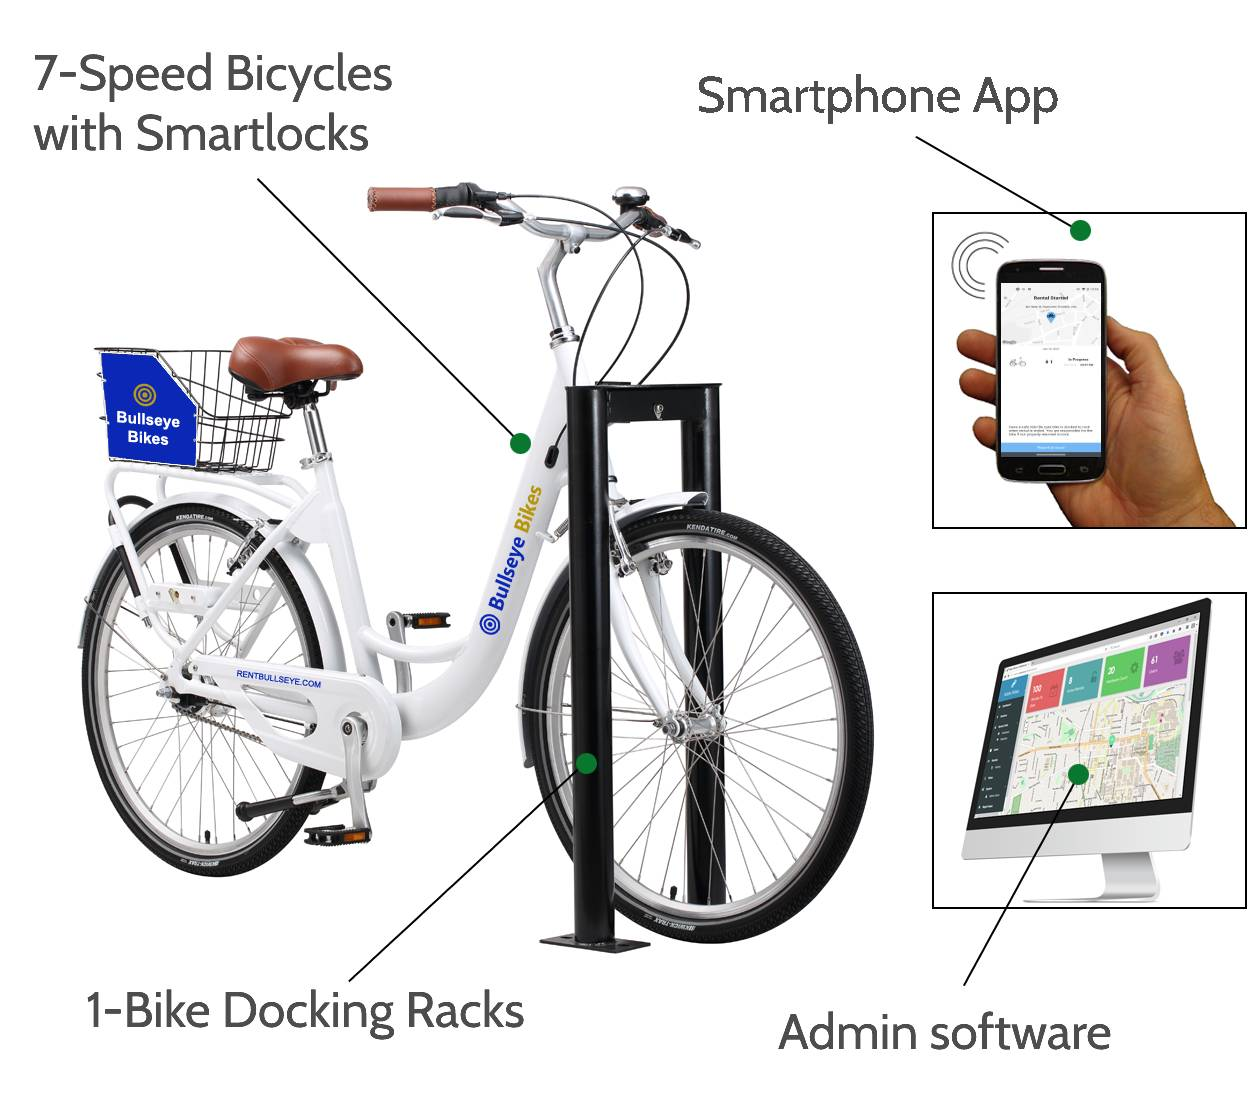 7-speed bike share system includes